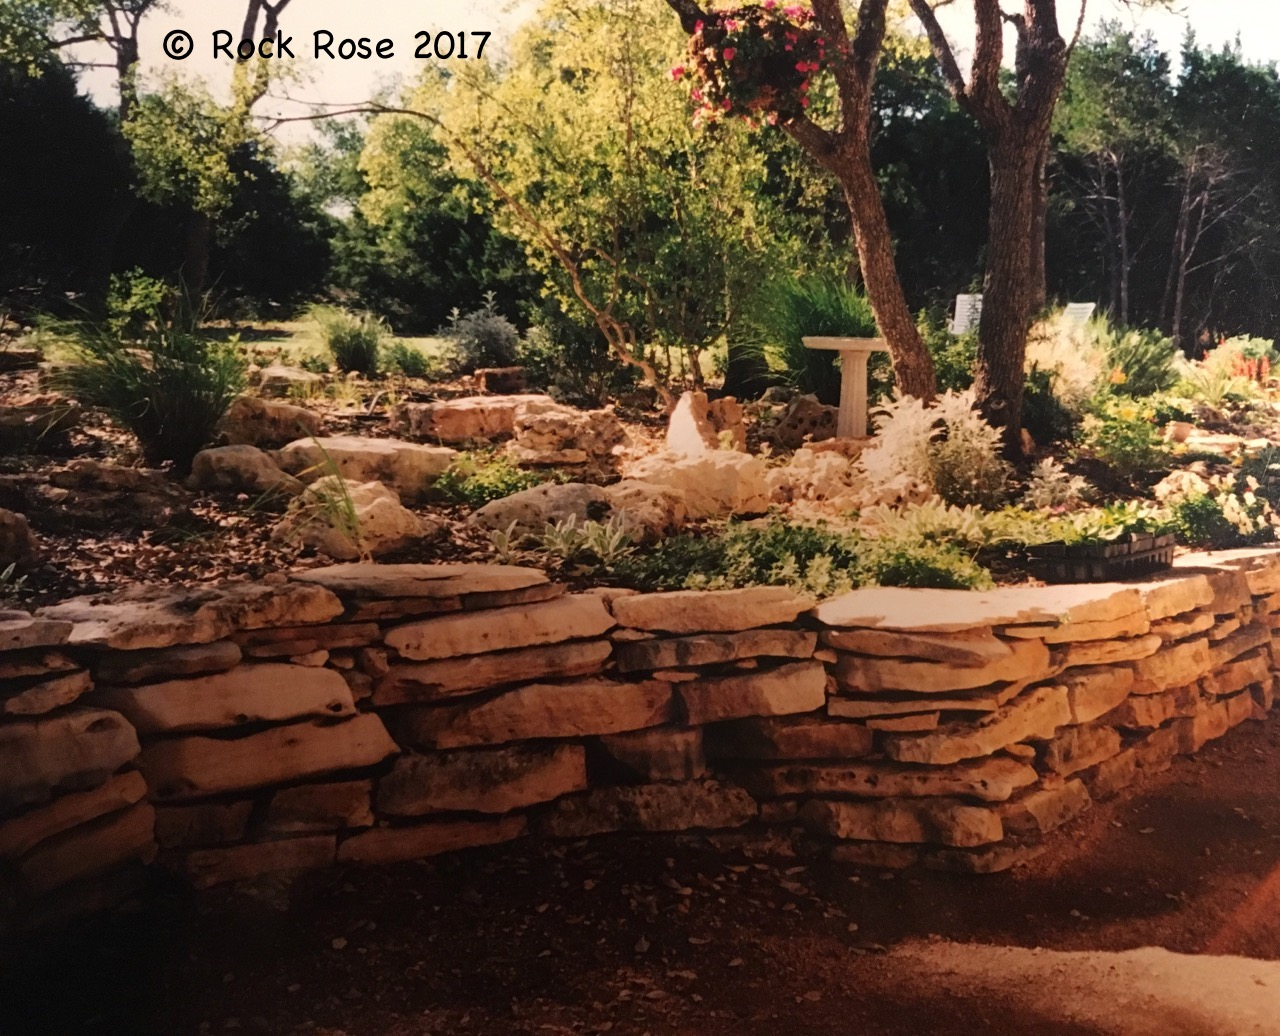 ROCK ROSE: HOW PAST AND PRESENT INFLUENCE YOUR GARDEN STYLE